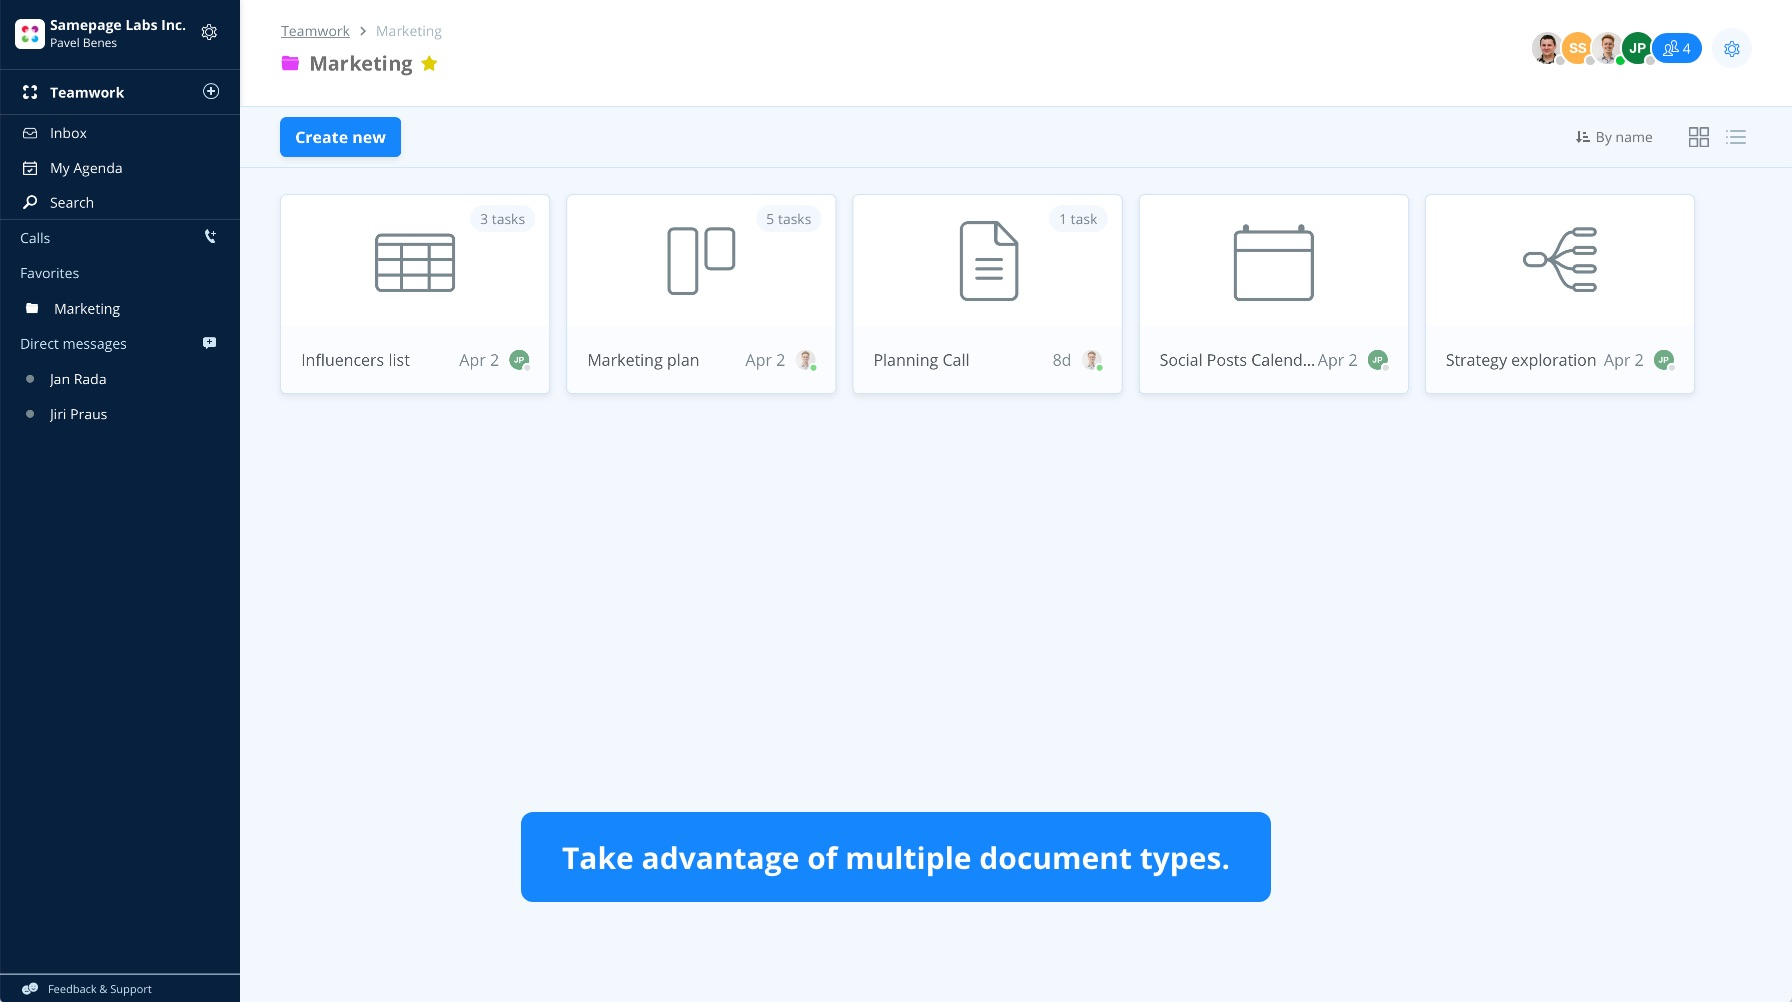 Enjoy multiple document types. You can also upload your own files and take advantage of the built-in chat and agenda options.